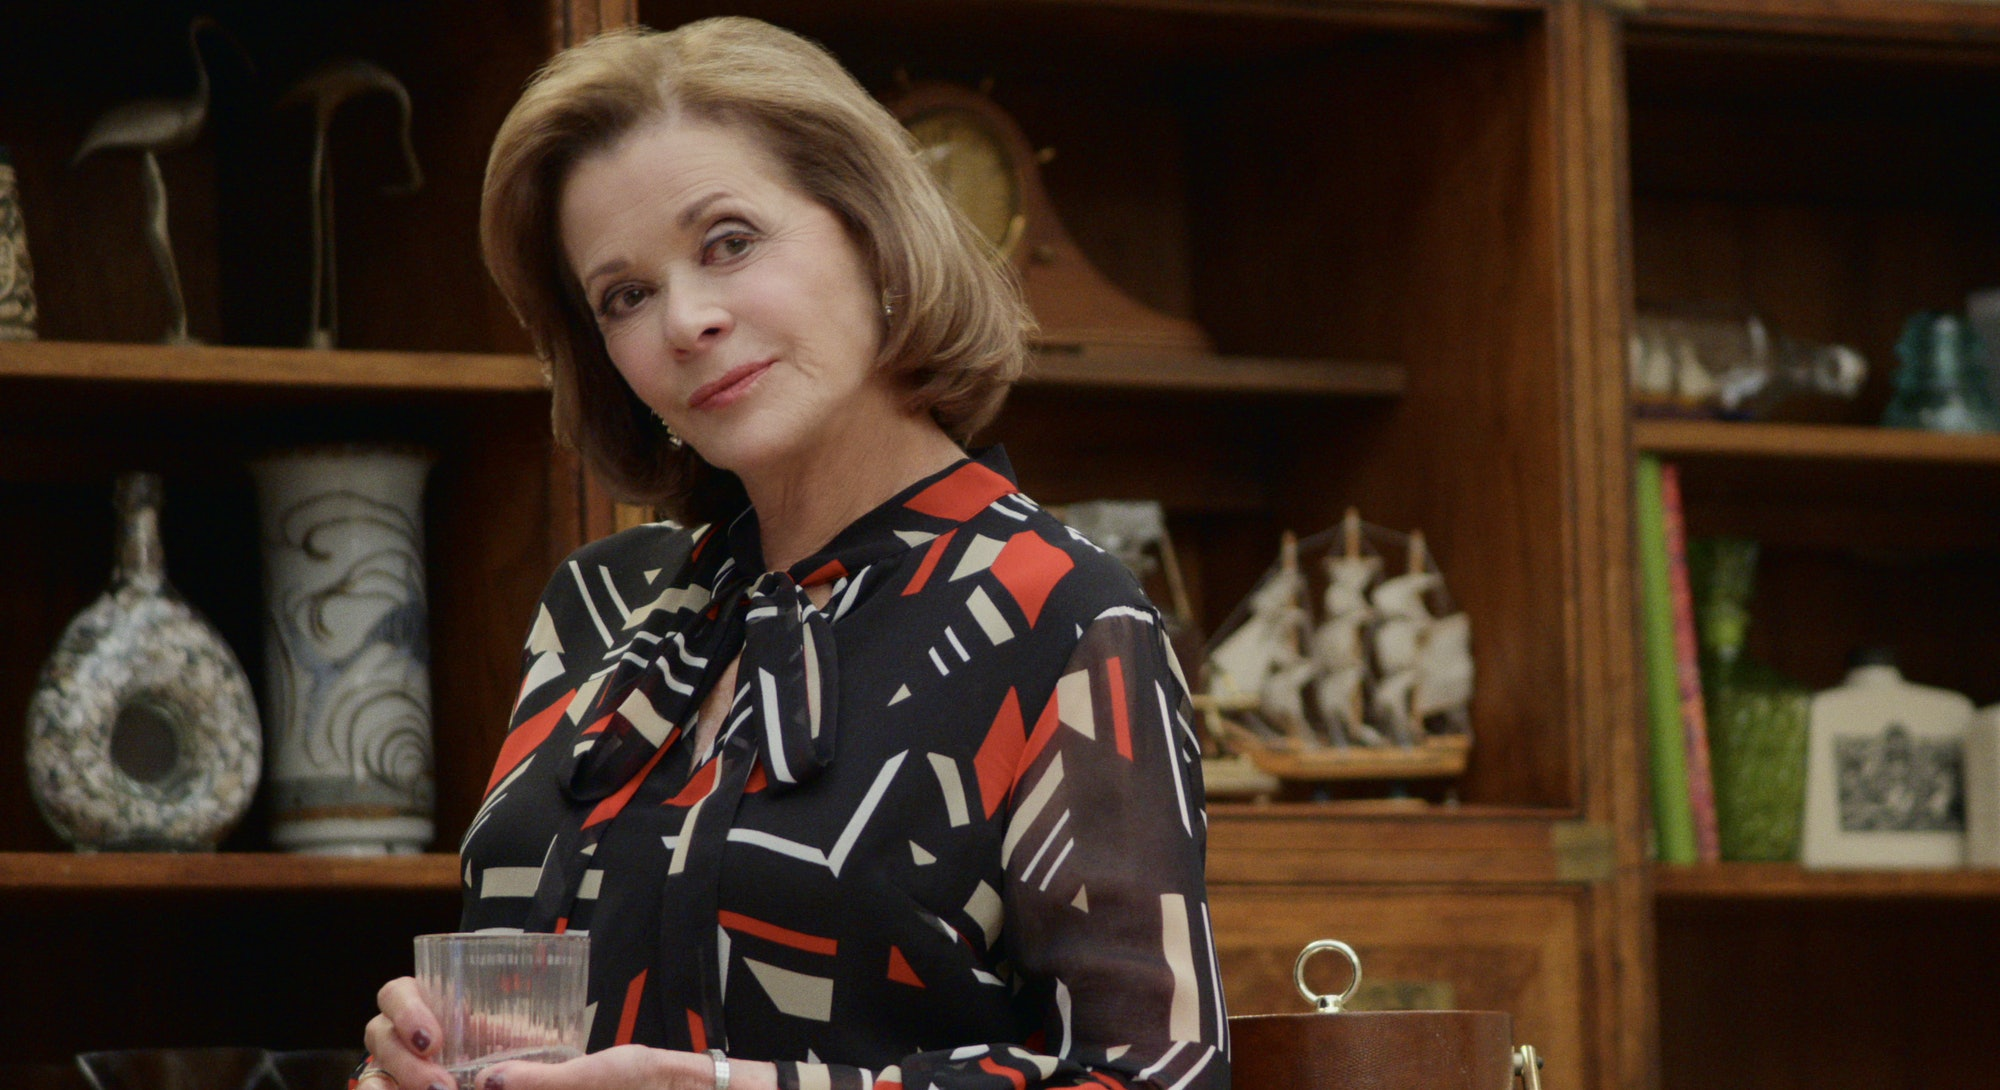 Lucille Bluth was played by Jessica Walter, who died on March 24 at age 80.